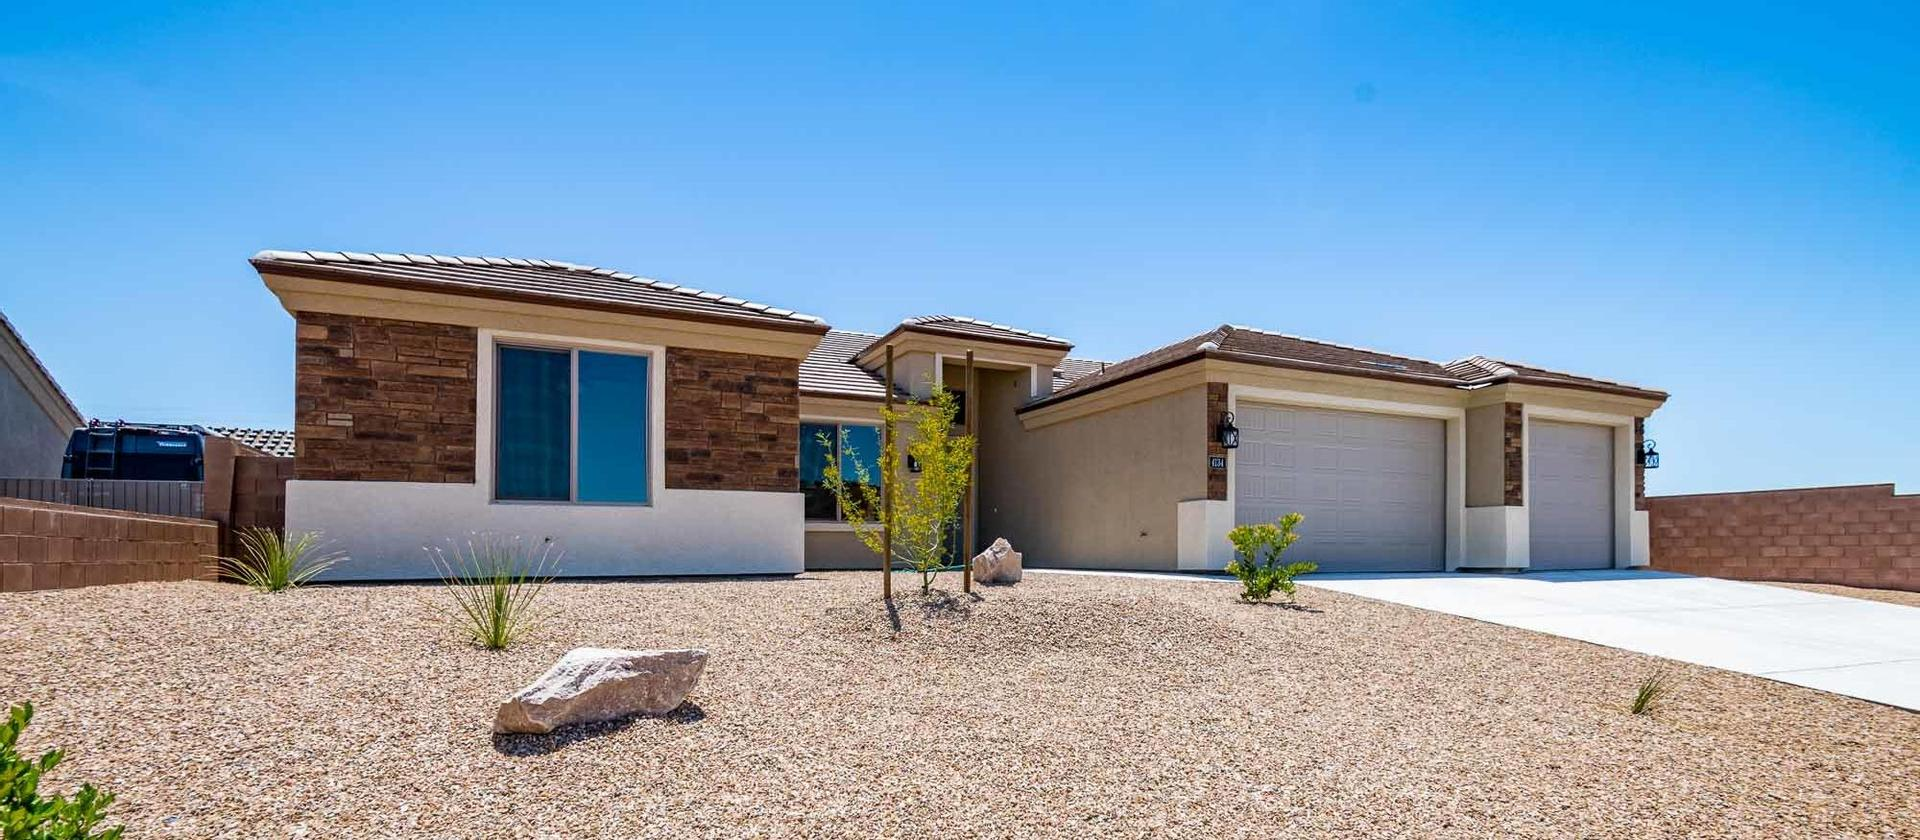 4806 Lazy River Rd (Ocotillo 2084)